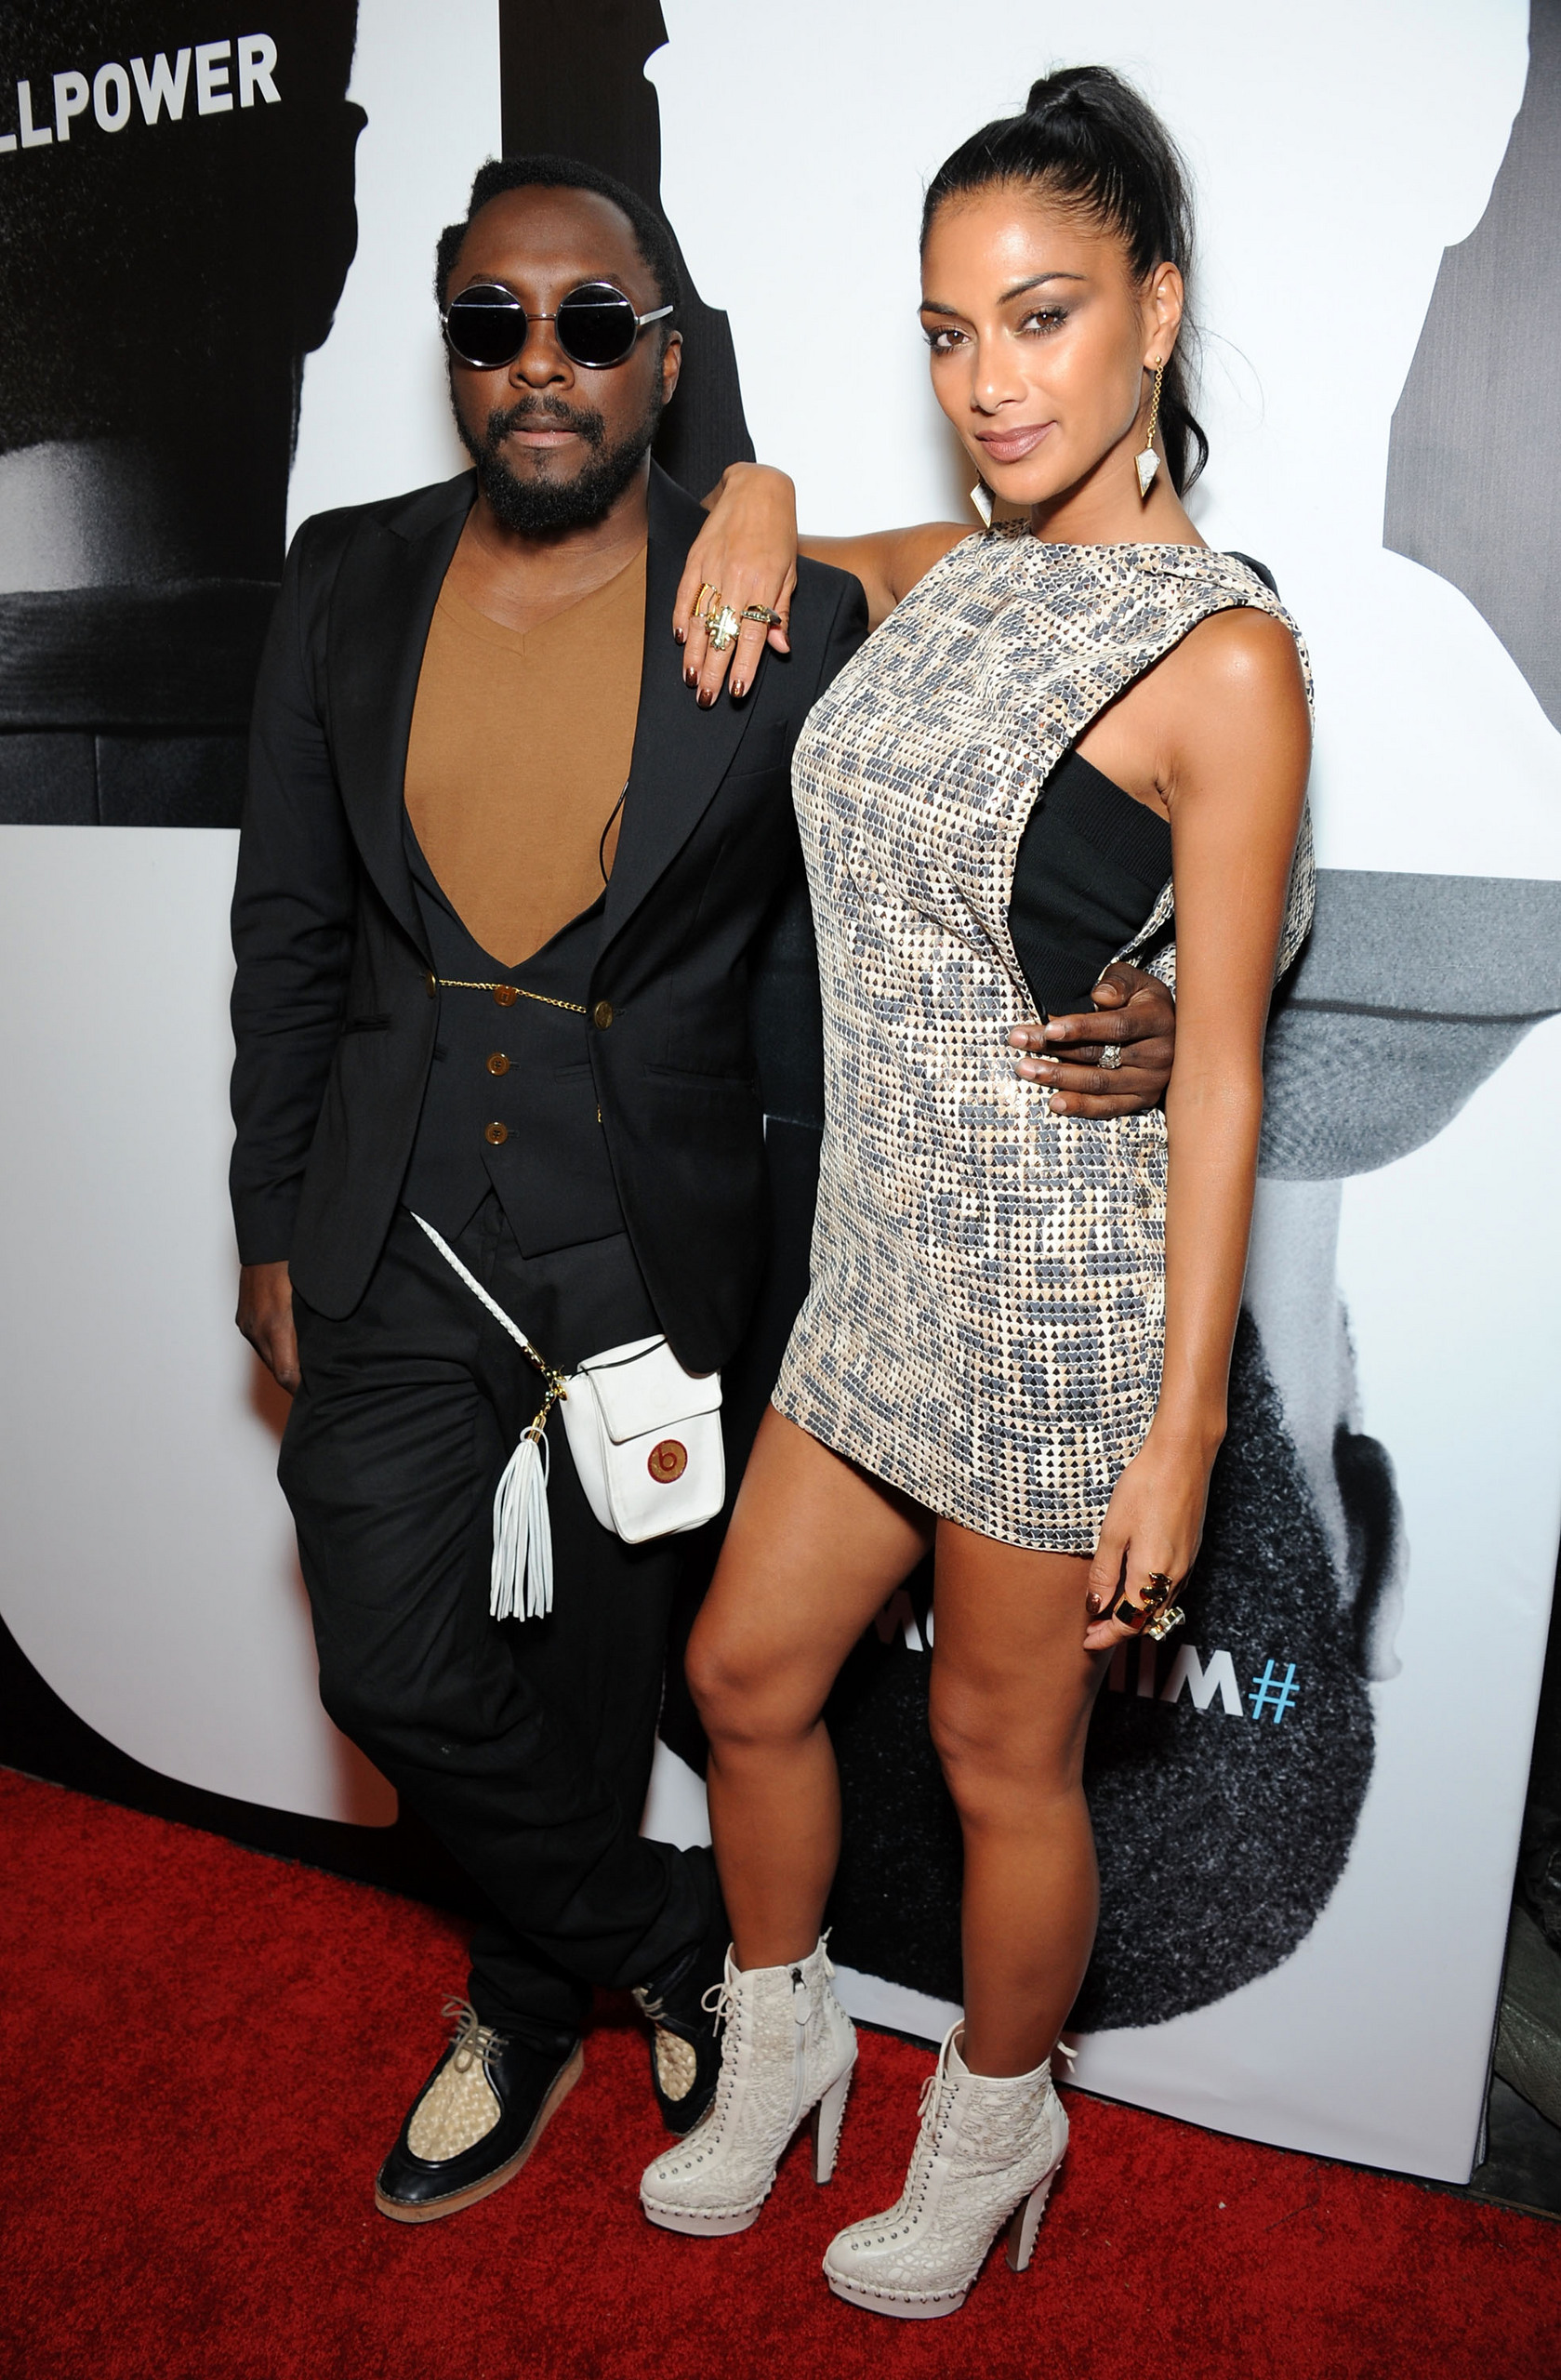 will.i.am Album Wrap Party [13 August 2012]